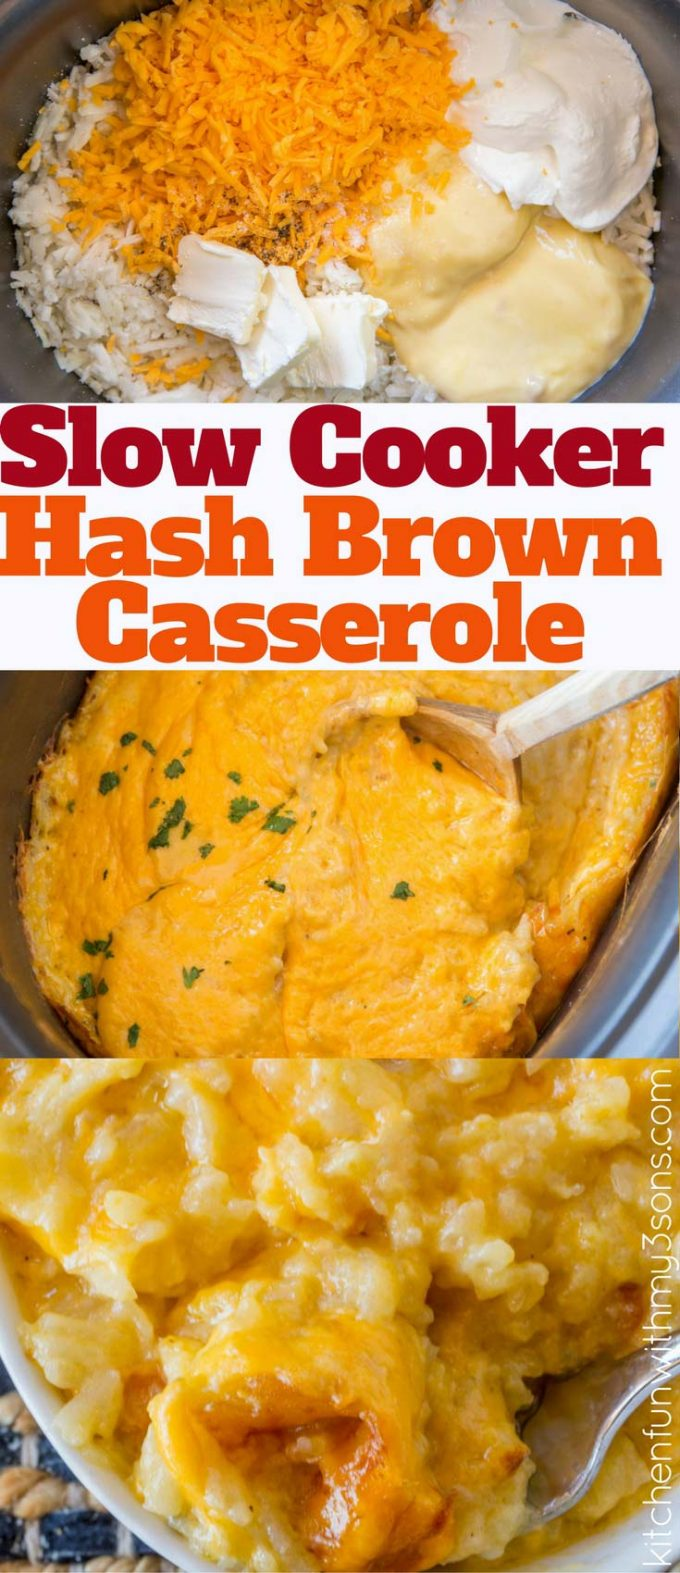 You'll LOVE this 5 Ingredient Cracker Barrel Copycat Slow Cooker Hash Brown Casserole for breakfast or brunch!